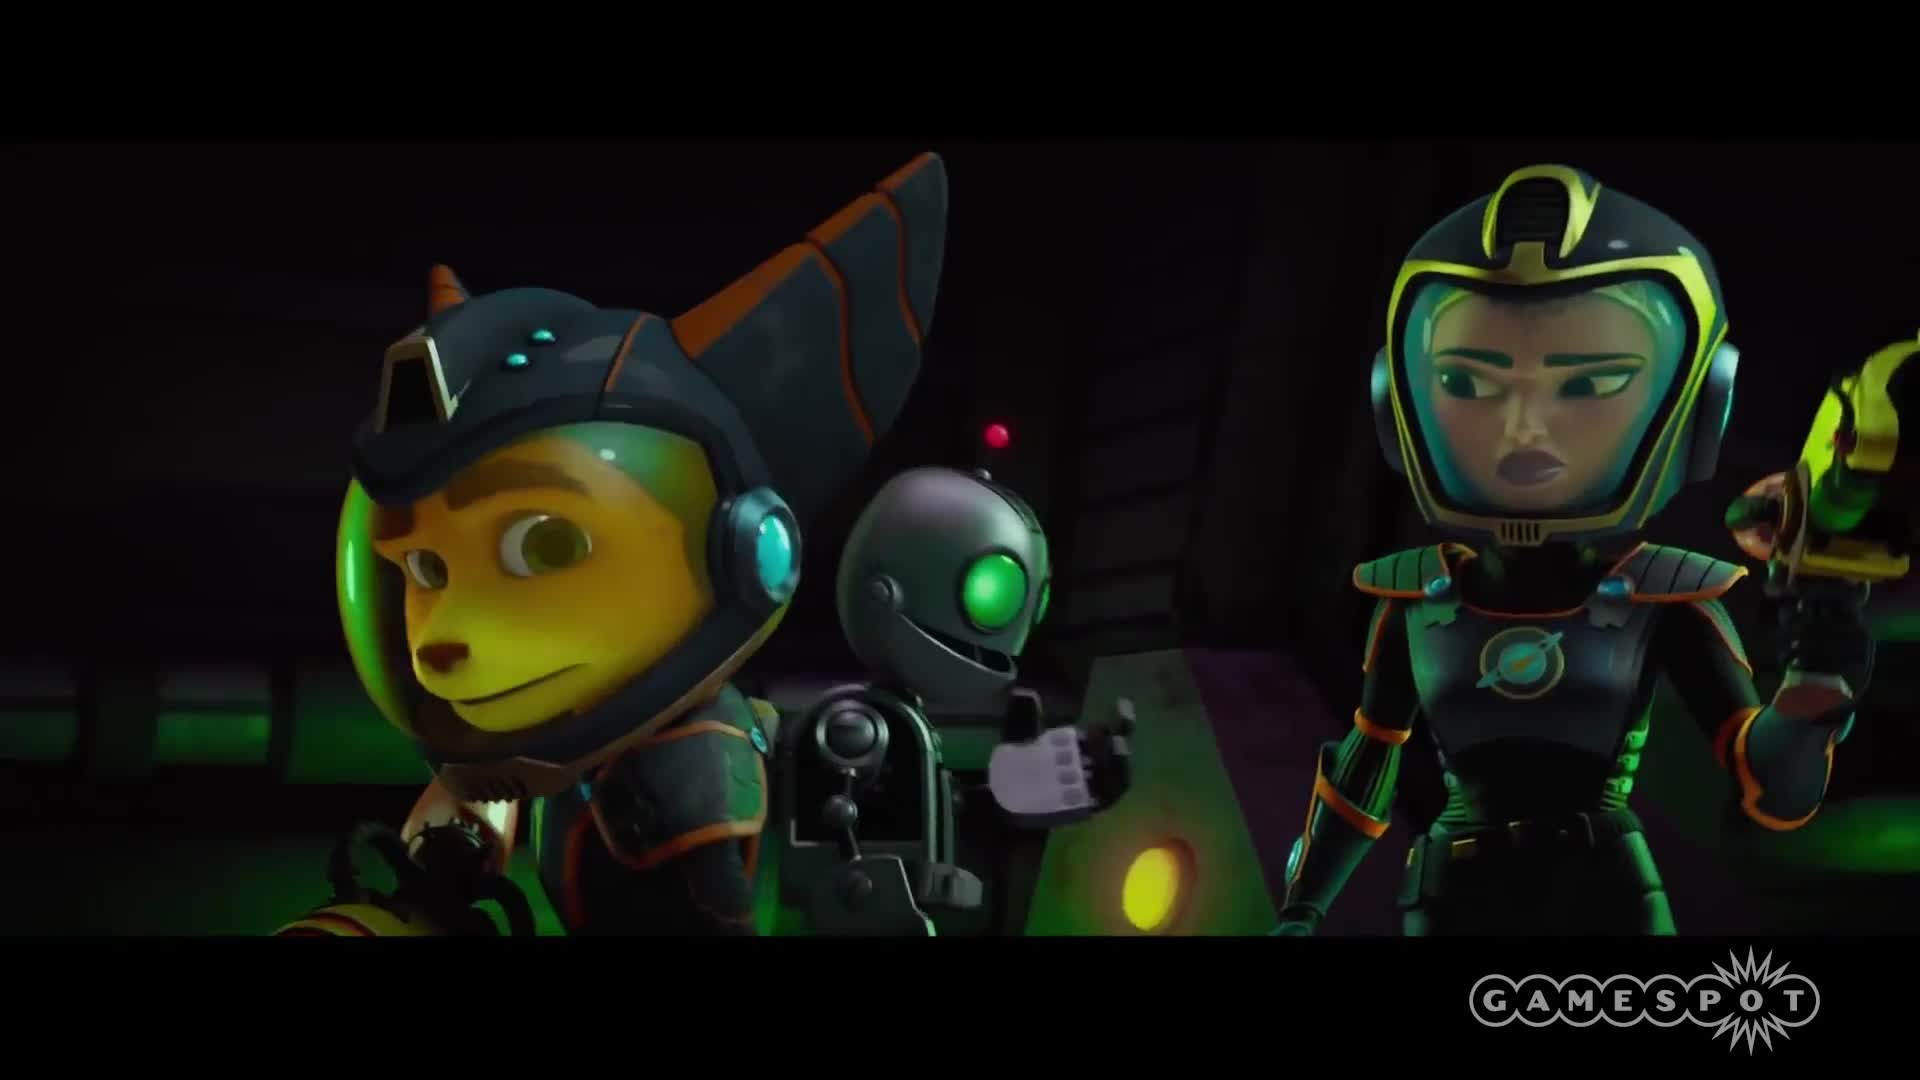 Ratchet & Clank - Movie Review (SPOILER FREE)